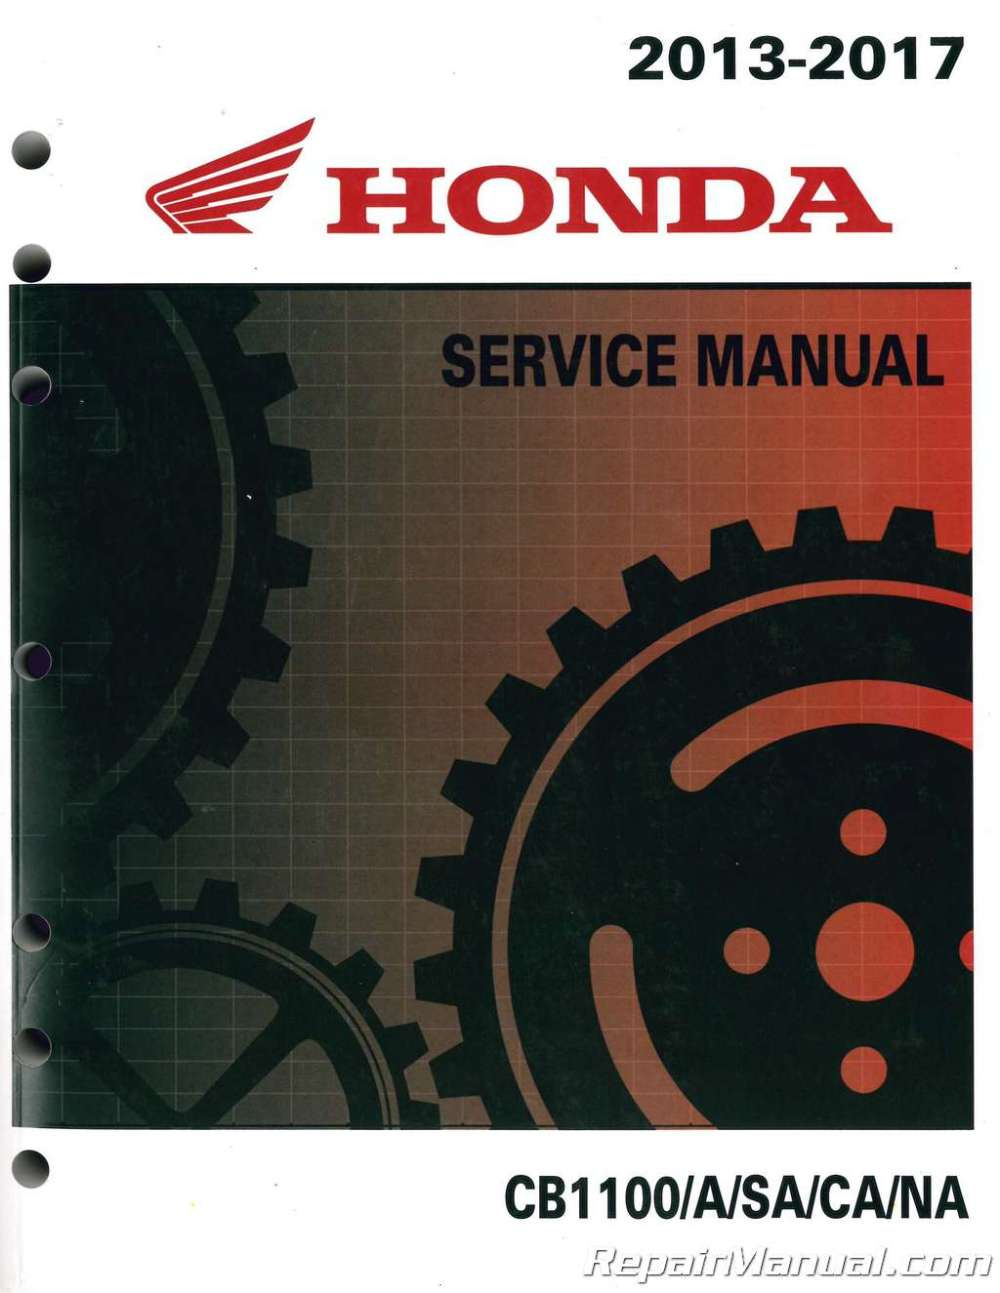 medium resolution of 2013 2017 honda cb1100 a motorcycle service manual